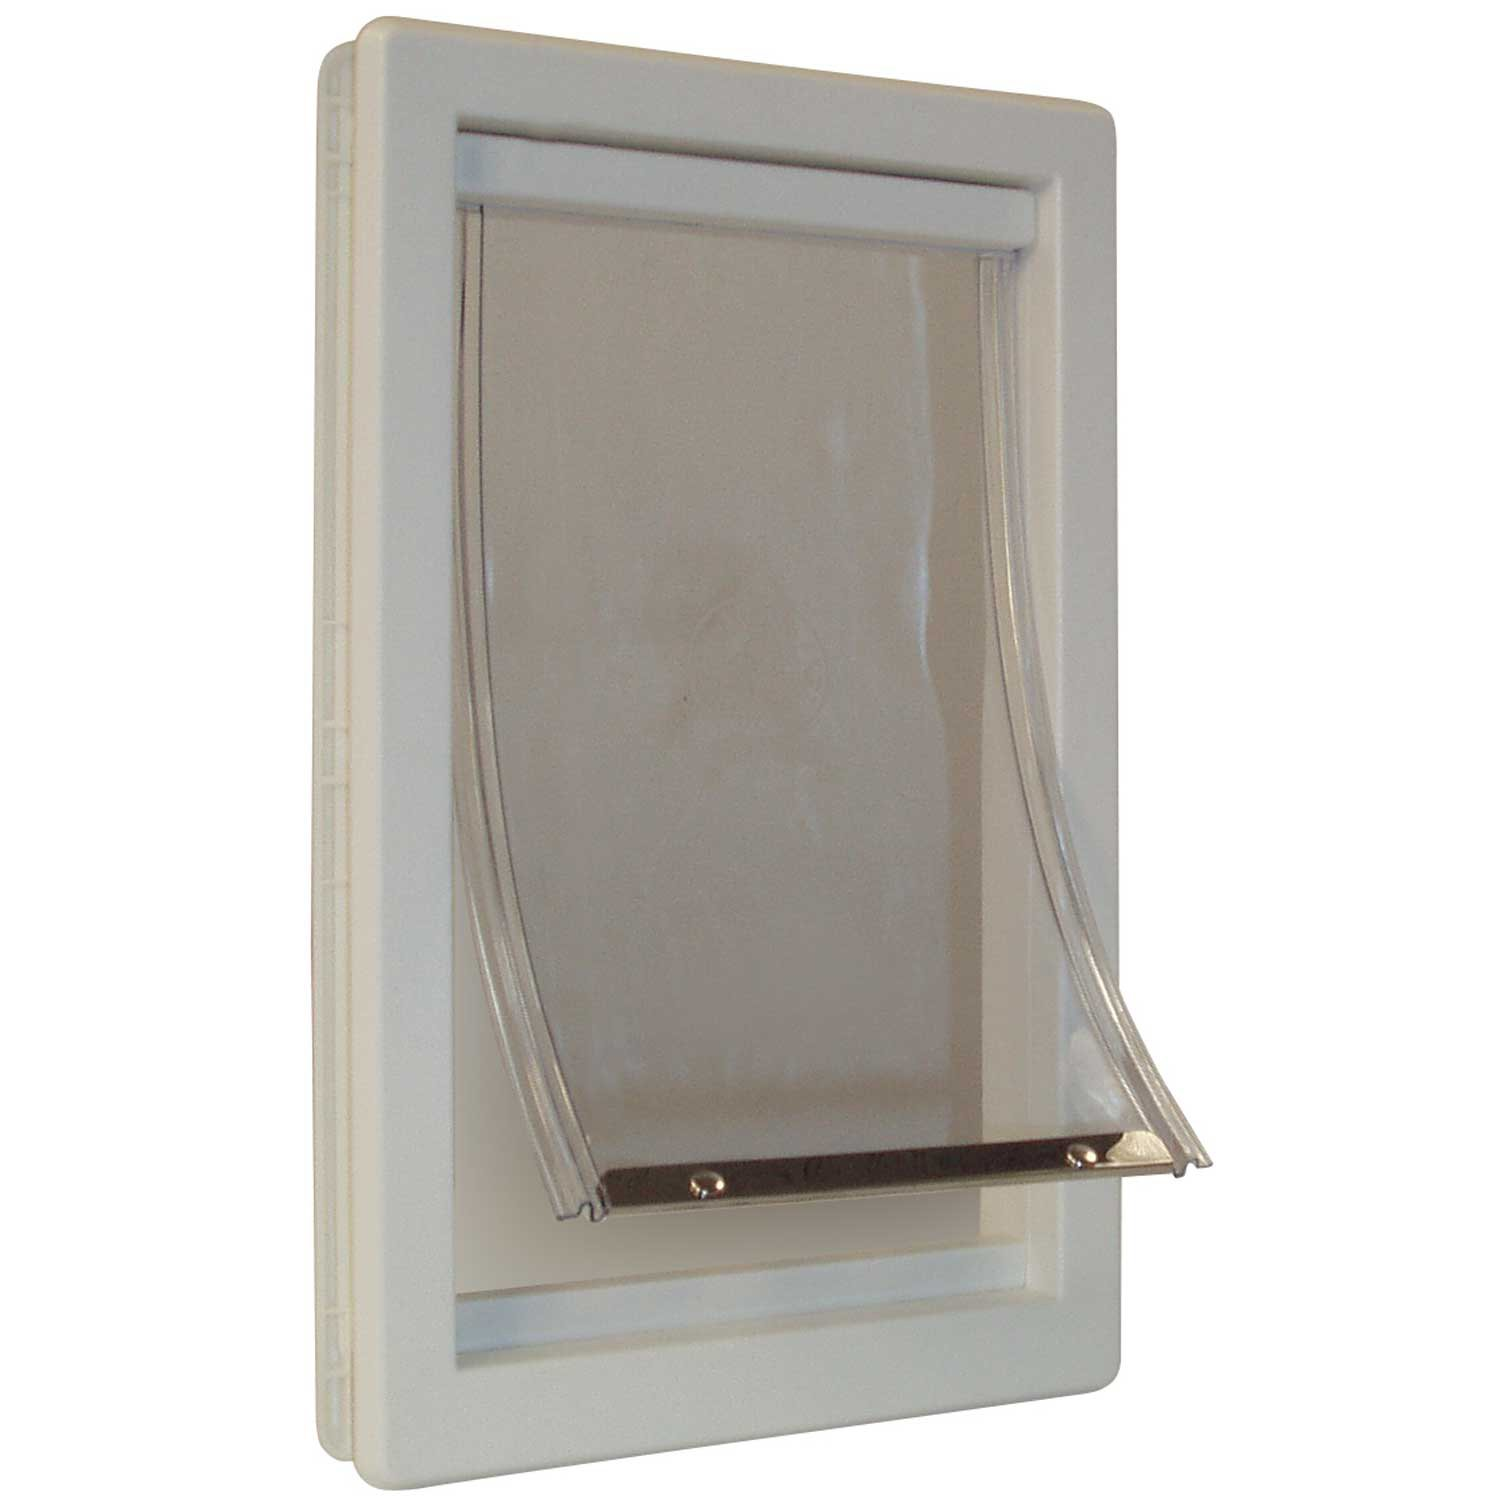 Durable pet door flap small dog cat safe soft telescoping for Dog door for garage door